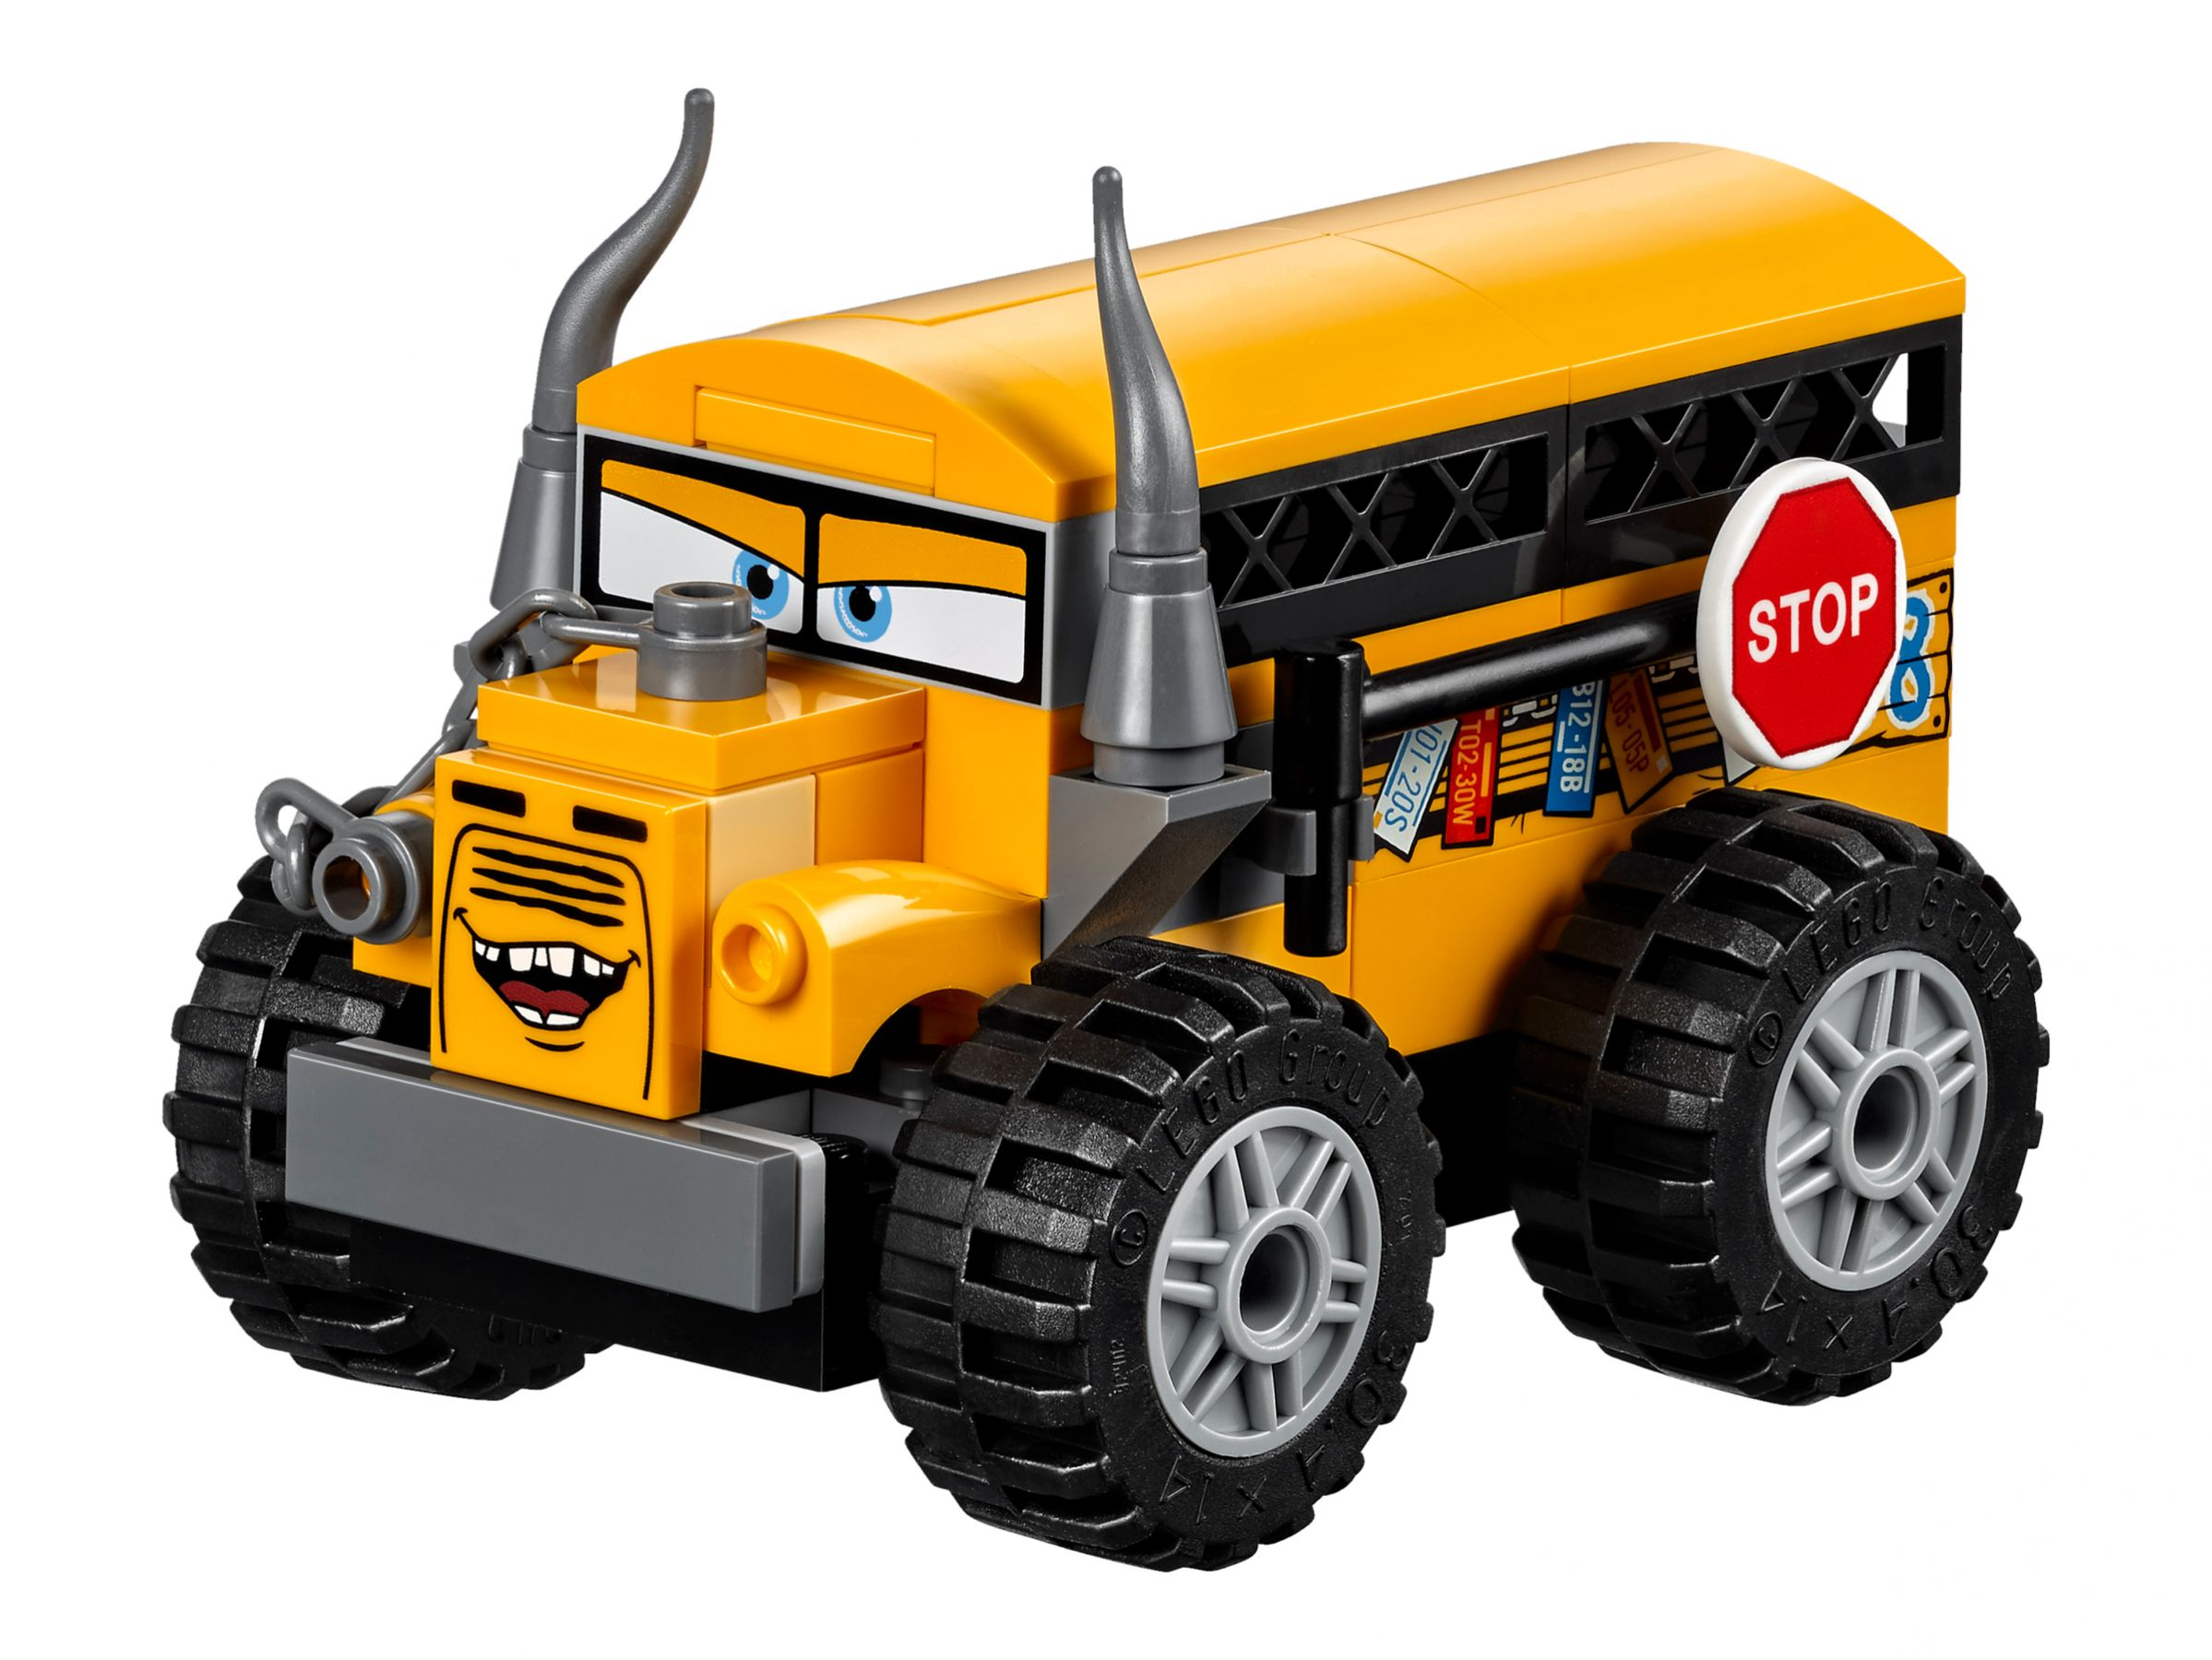 LEGO Juniors 10744 Crazy 8 Rennen in Thunder Hollow LEGO_10744_alt5.jpg